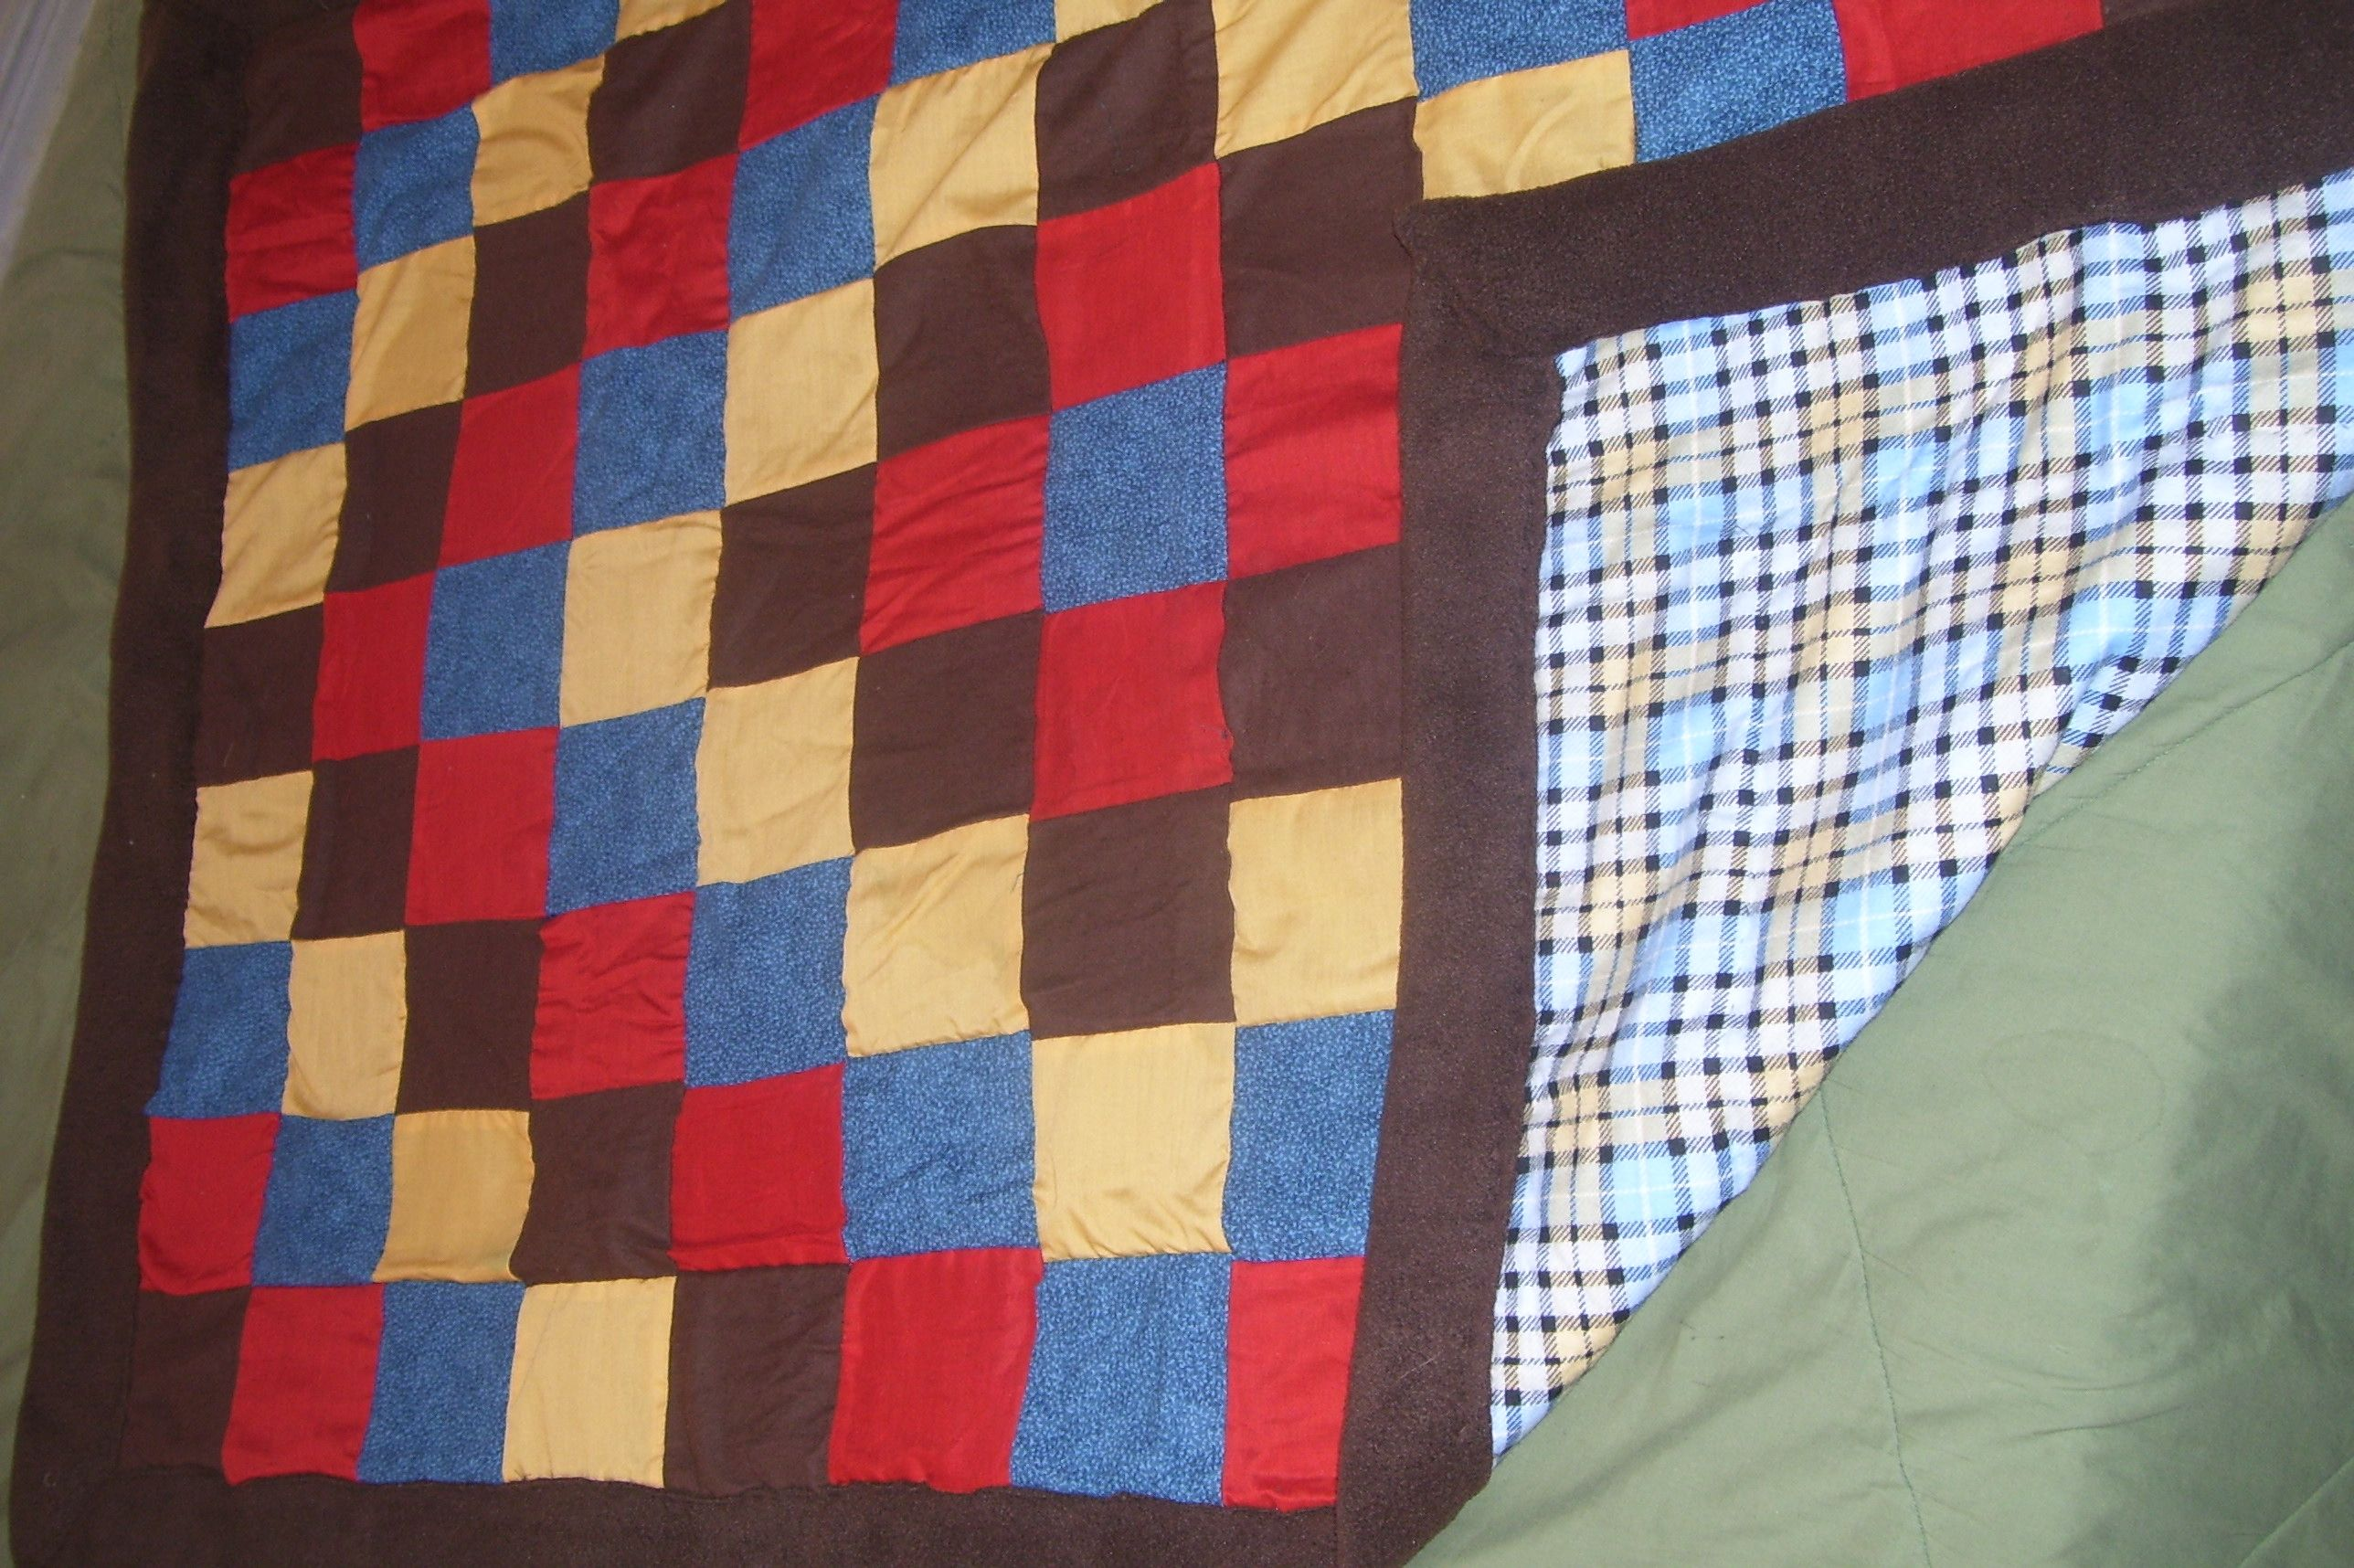 forest bedding quilt for cute girl room rainbow crib fawn listing or fullxfull blanket bunny nursery baby boy il quilts